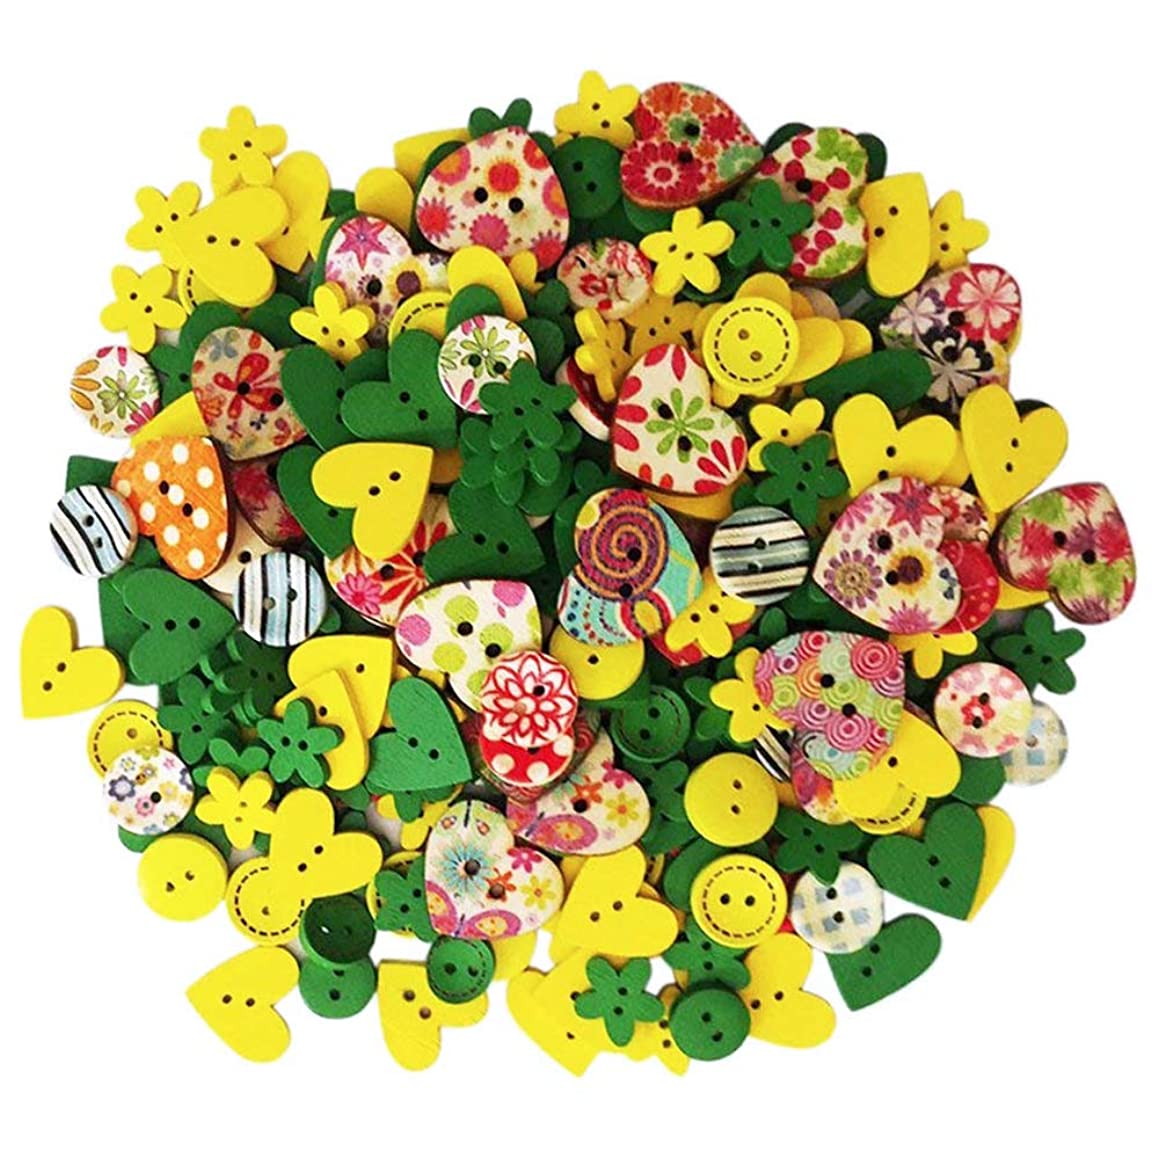 Happlee 100Pcs Wooden Buttons in Bulk Mixed Colors & Shapes, Wood Sewing Buttons for Sewing, Collections, Arts & Crafts Projects, Scrapbooking, DIY Decoration and More(Colorful)